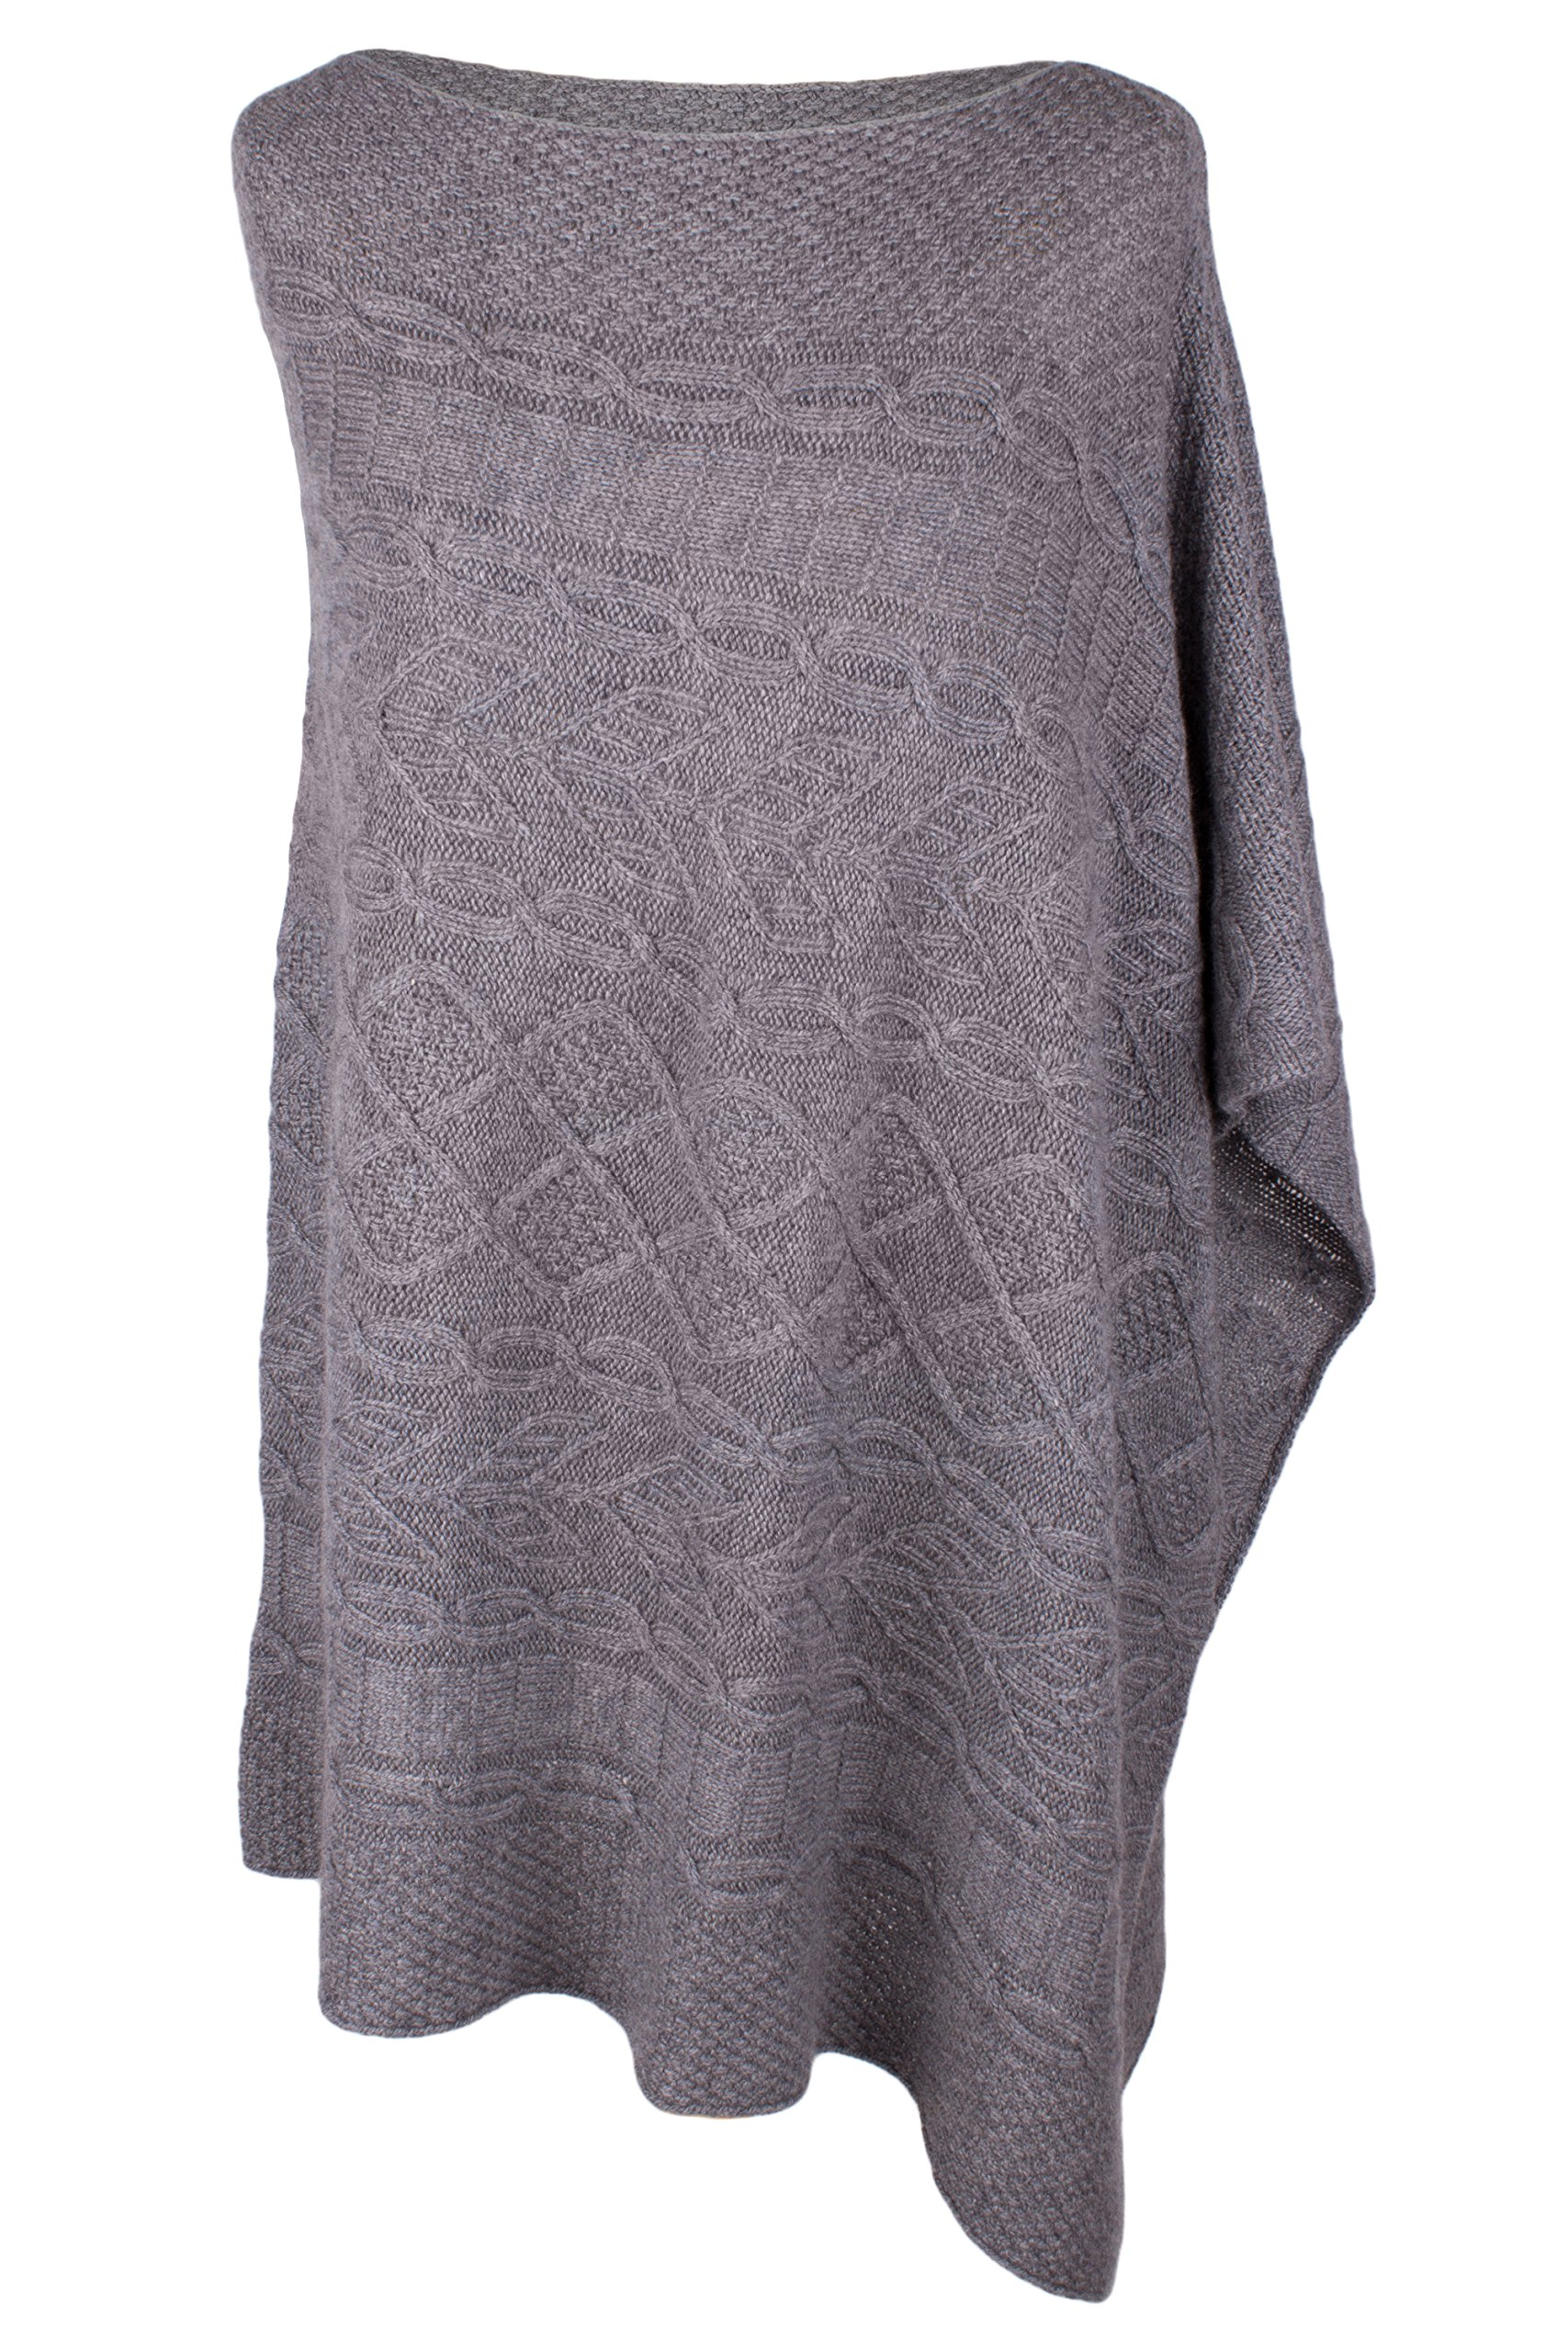 Women's 100% Cashmere Cable Poncho - Light Gray - made in Scotland by Love Cashmere